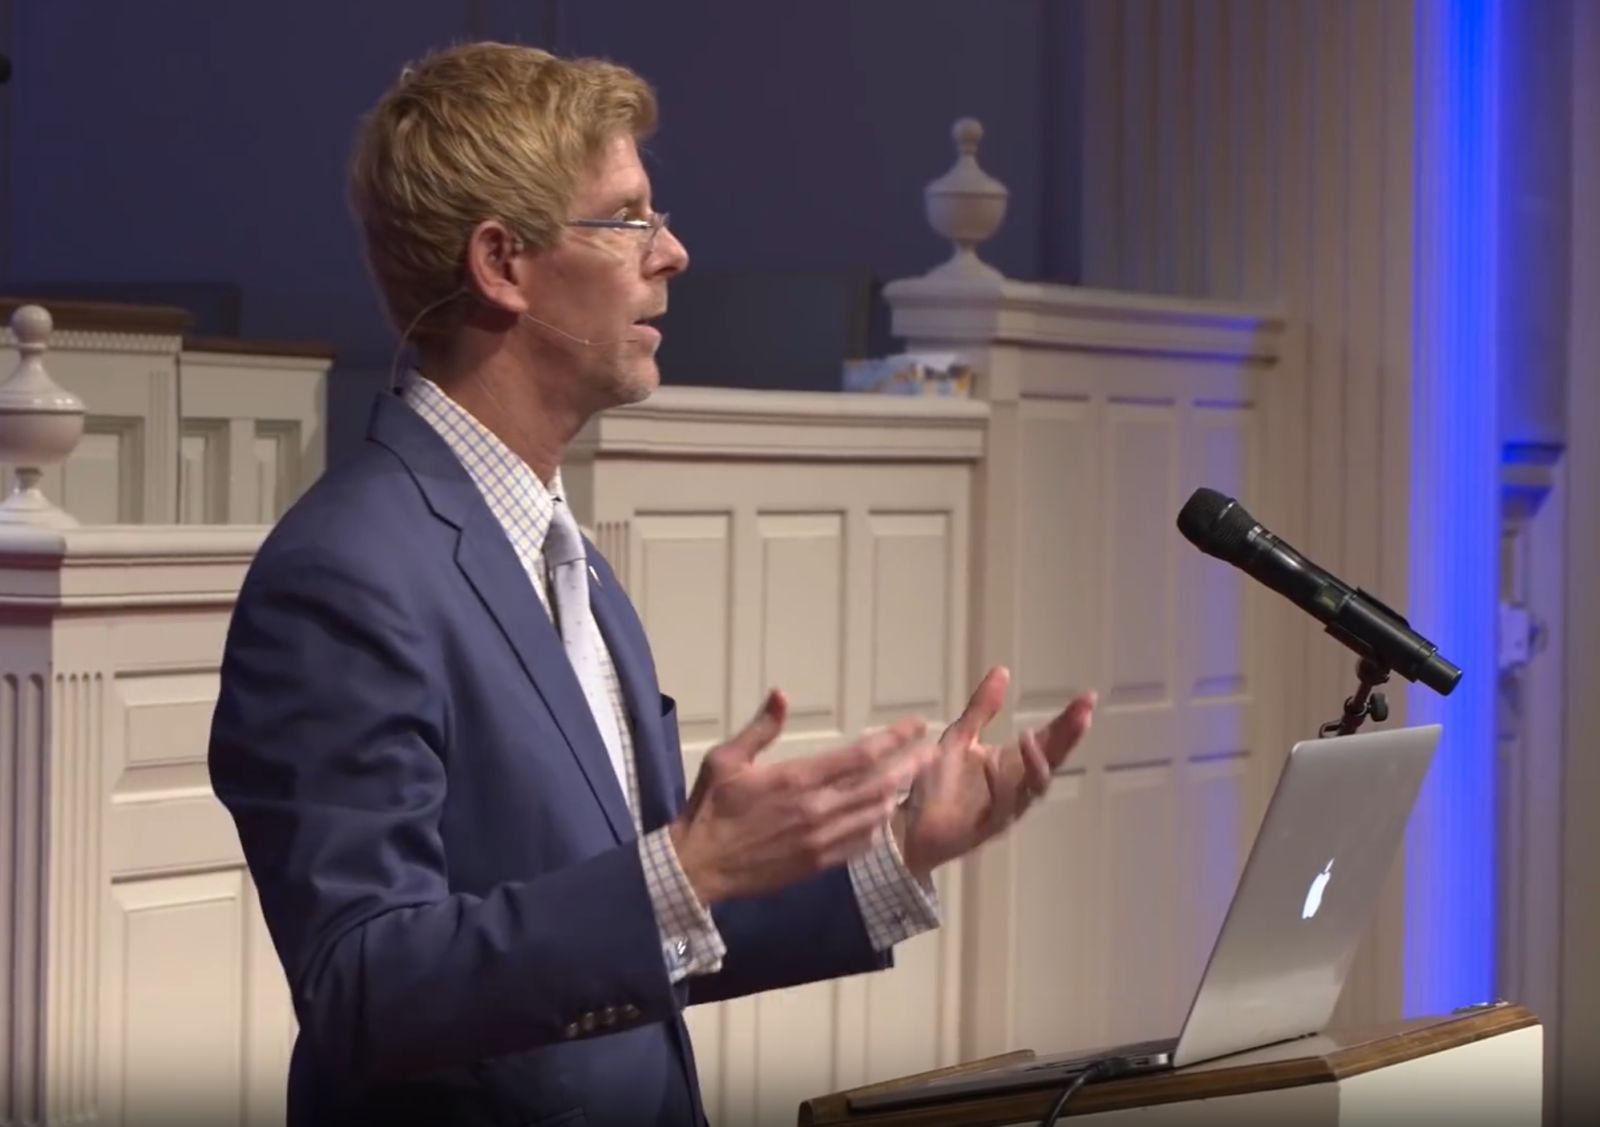 Jay Richards speaks at 2019 Dallas Science and Faith Conference at Park Cities Baptist Church in Dallas sponsored by Discovery Institute's Center for Science and Culture